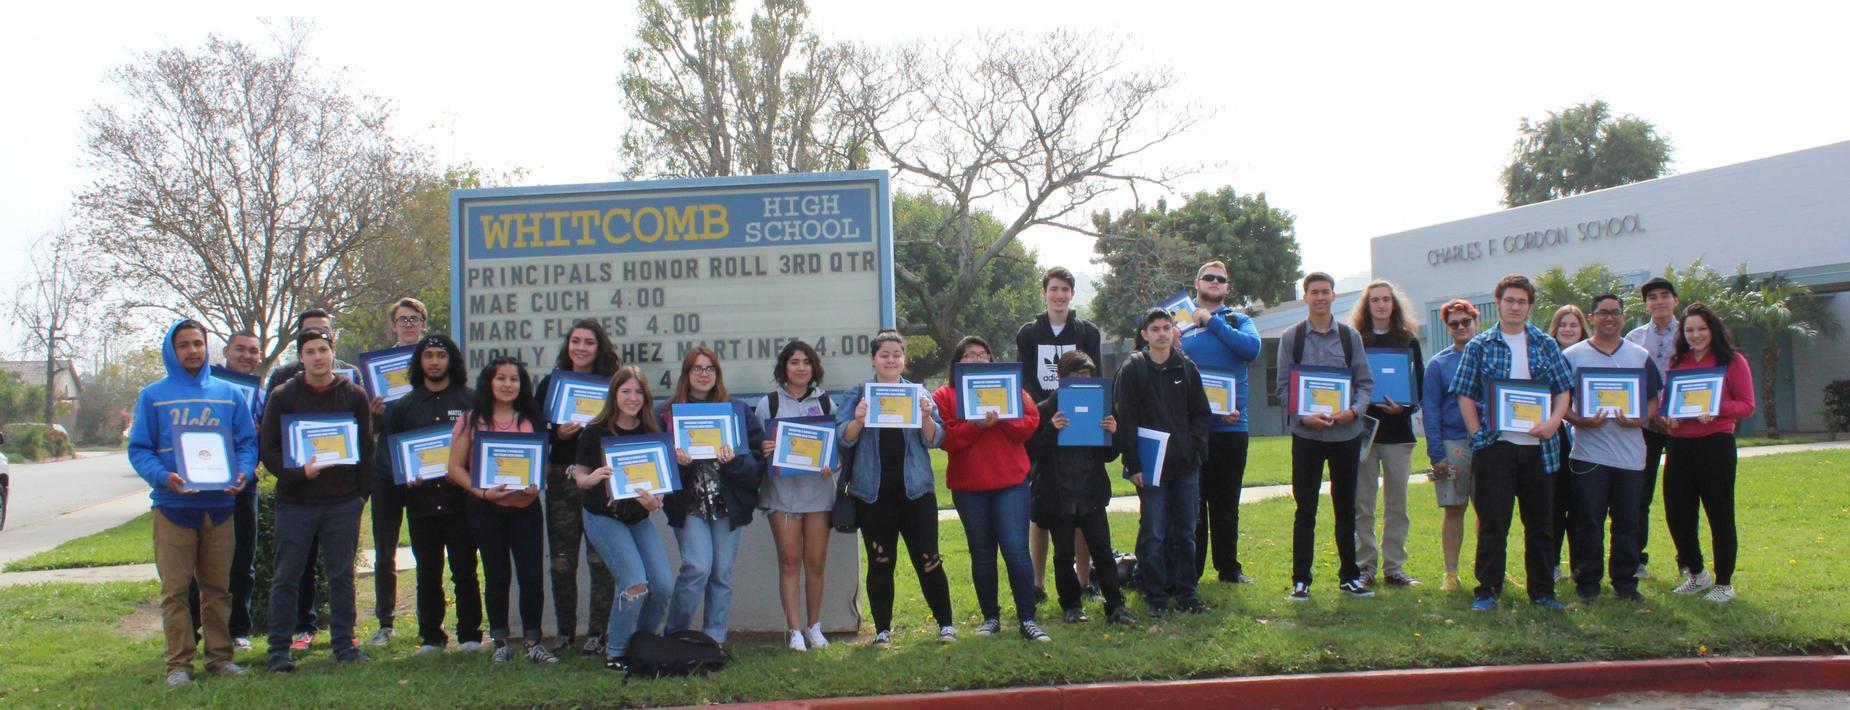 Whitcomb High School Honor Roll